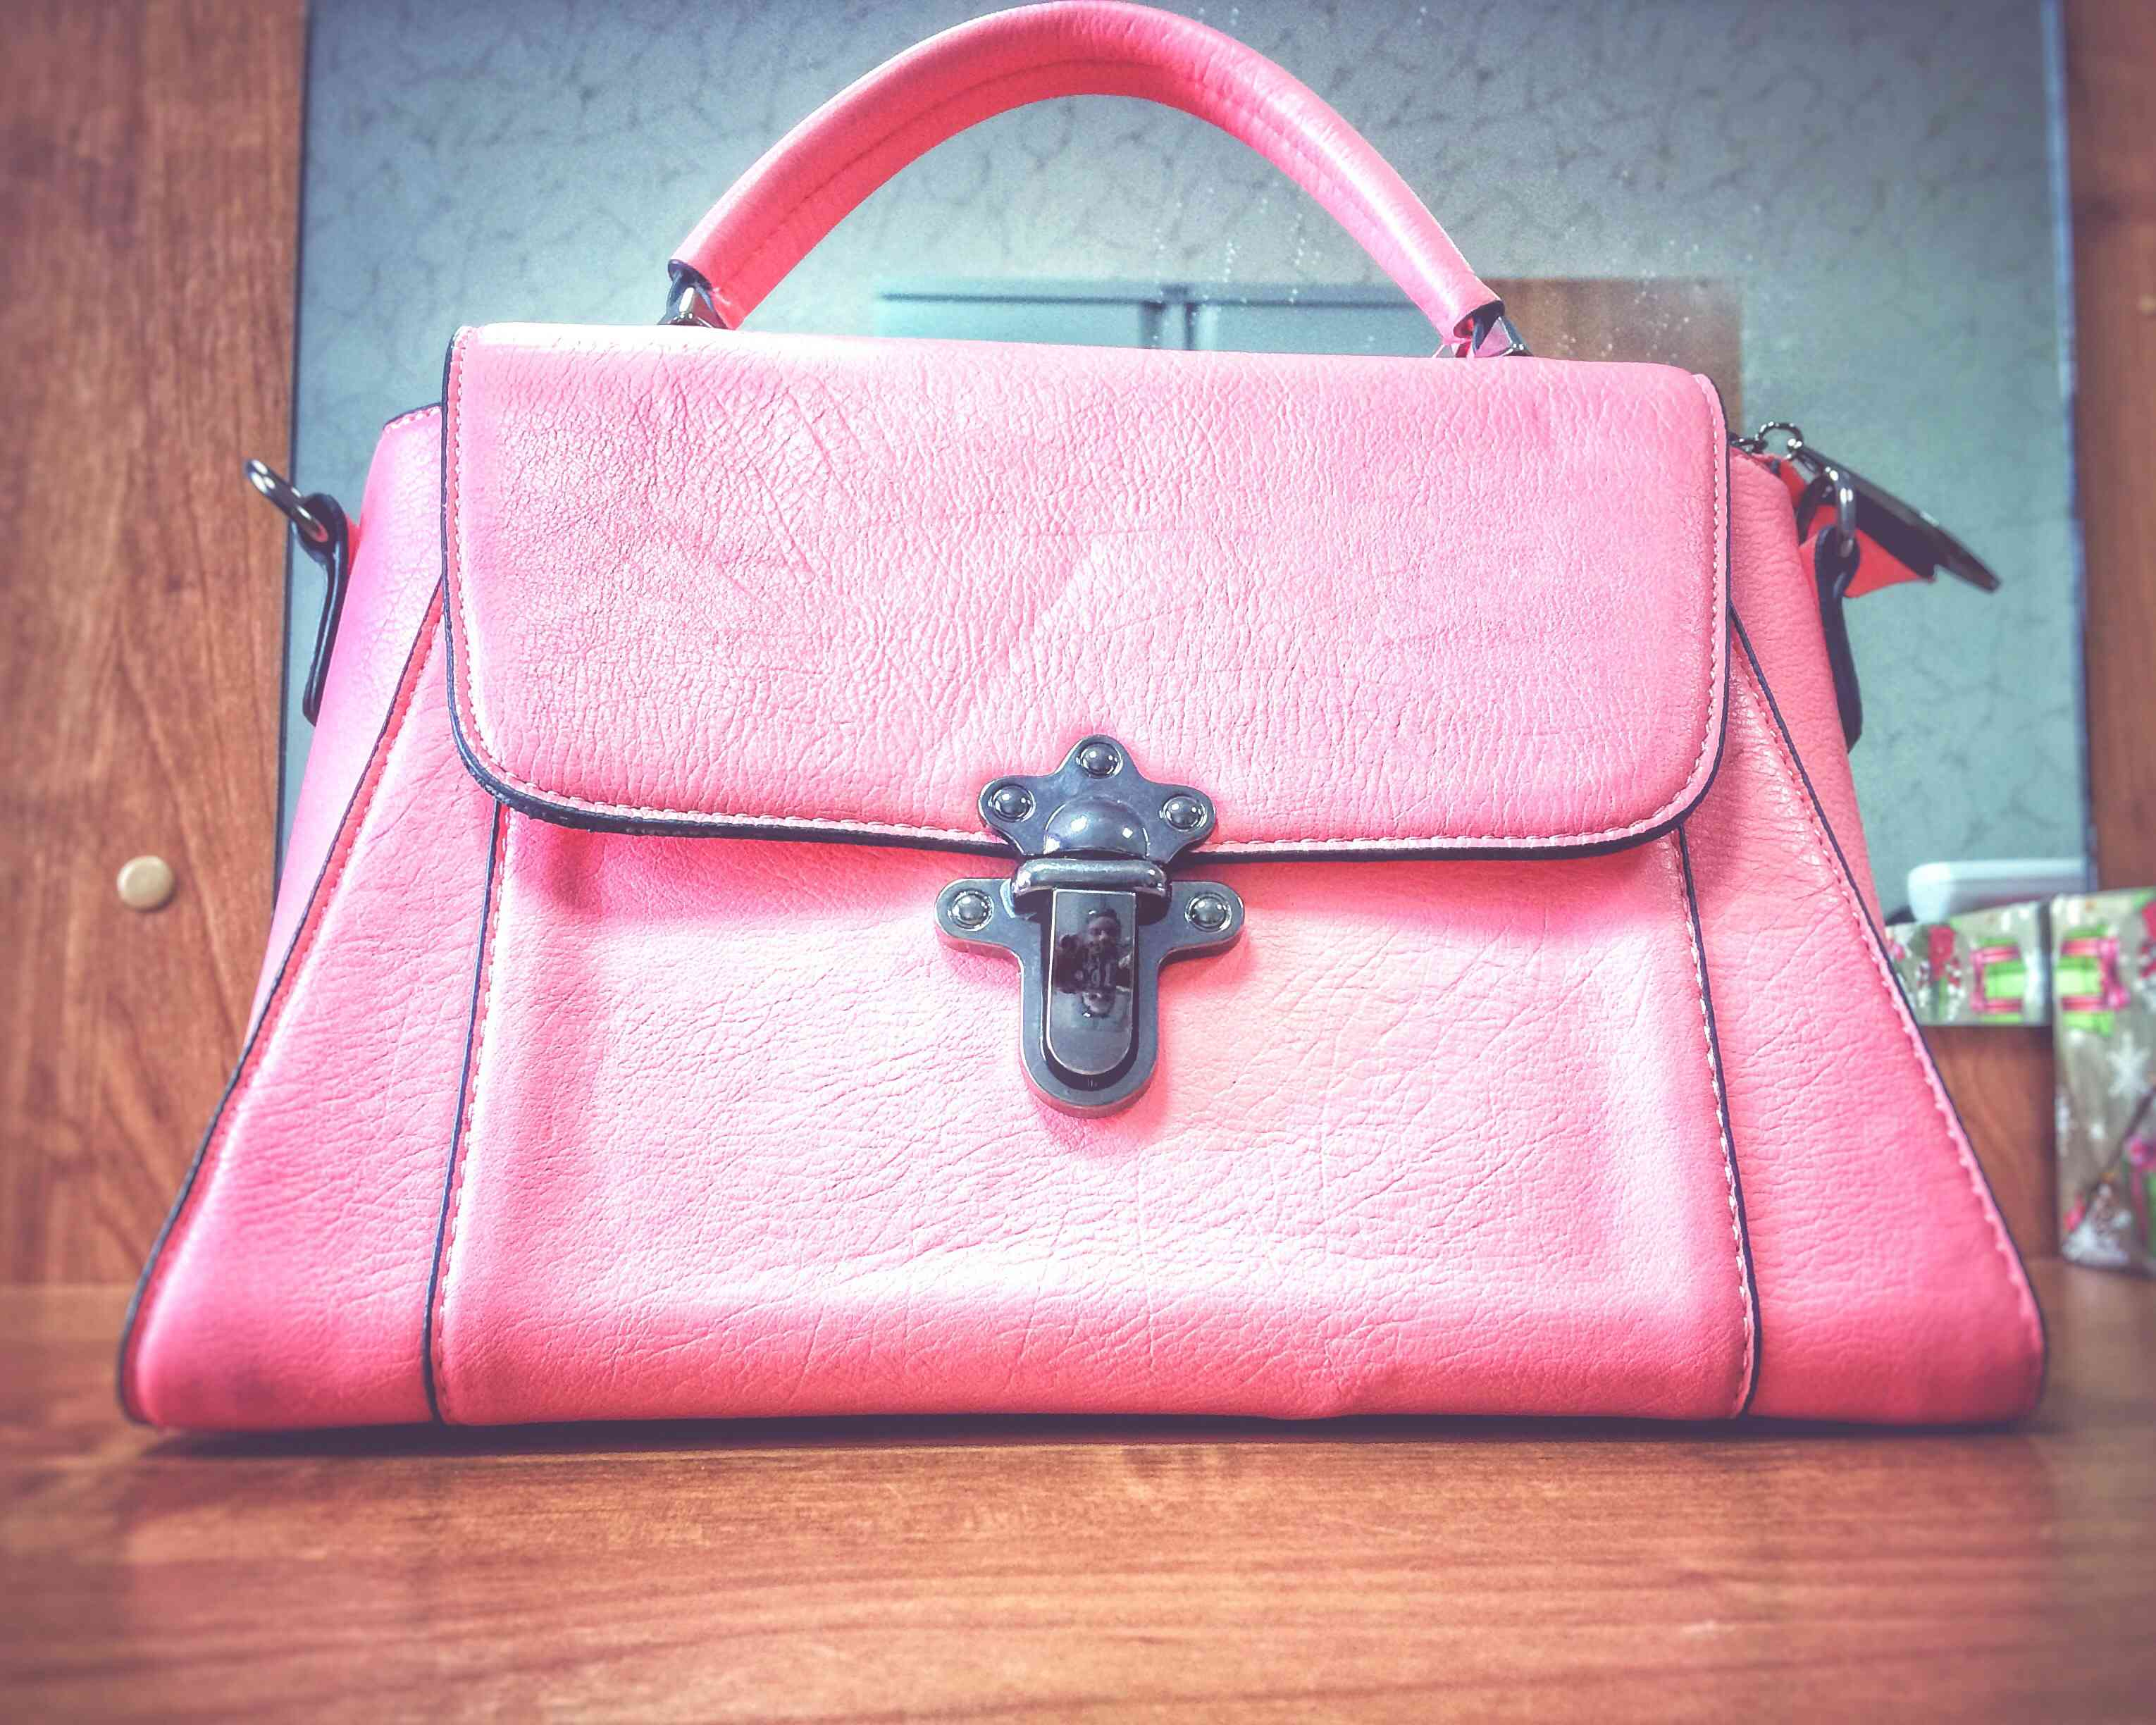 A bright pink handbag may not be a good choice to carry to a job interview.